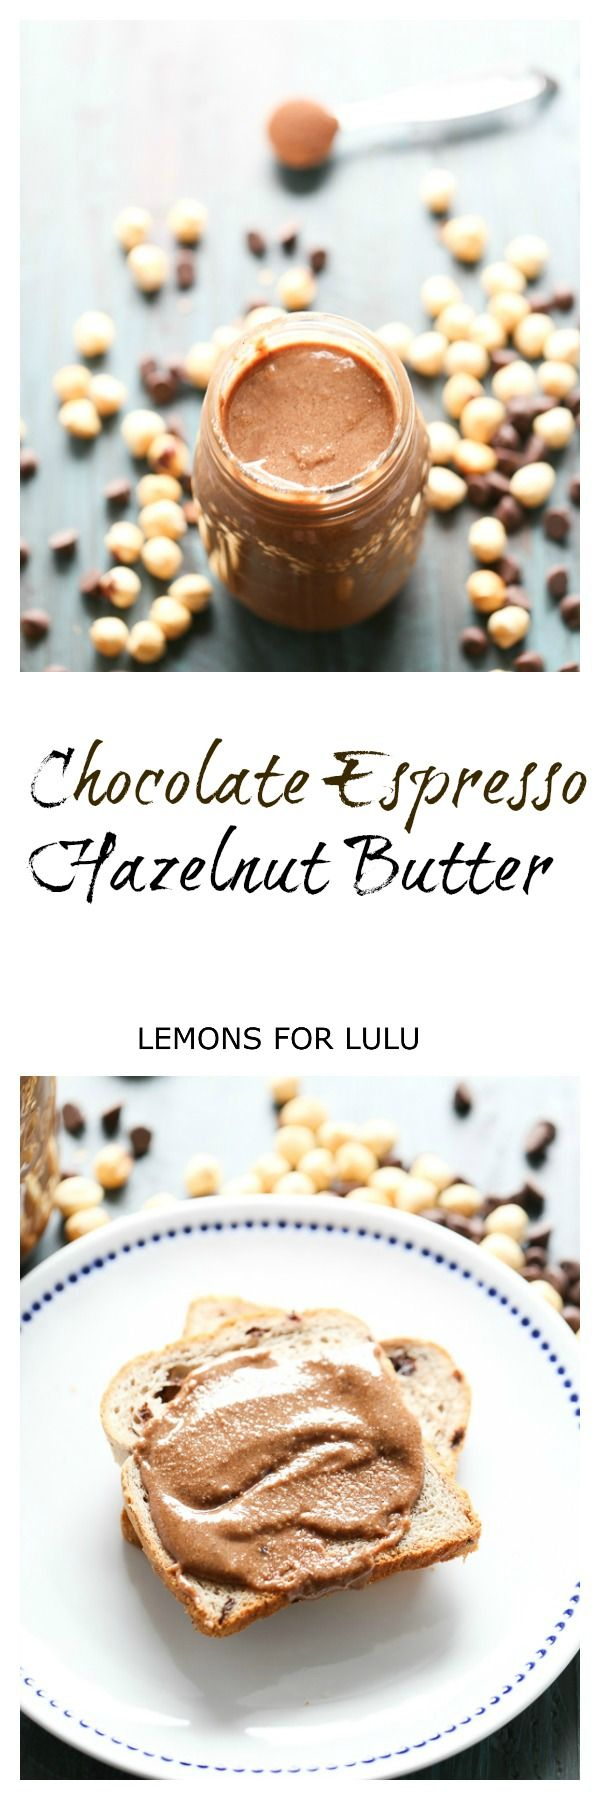 Chocolate and Espresso Easy Hazelnut Butter lemonsforlulu.com